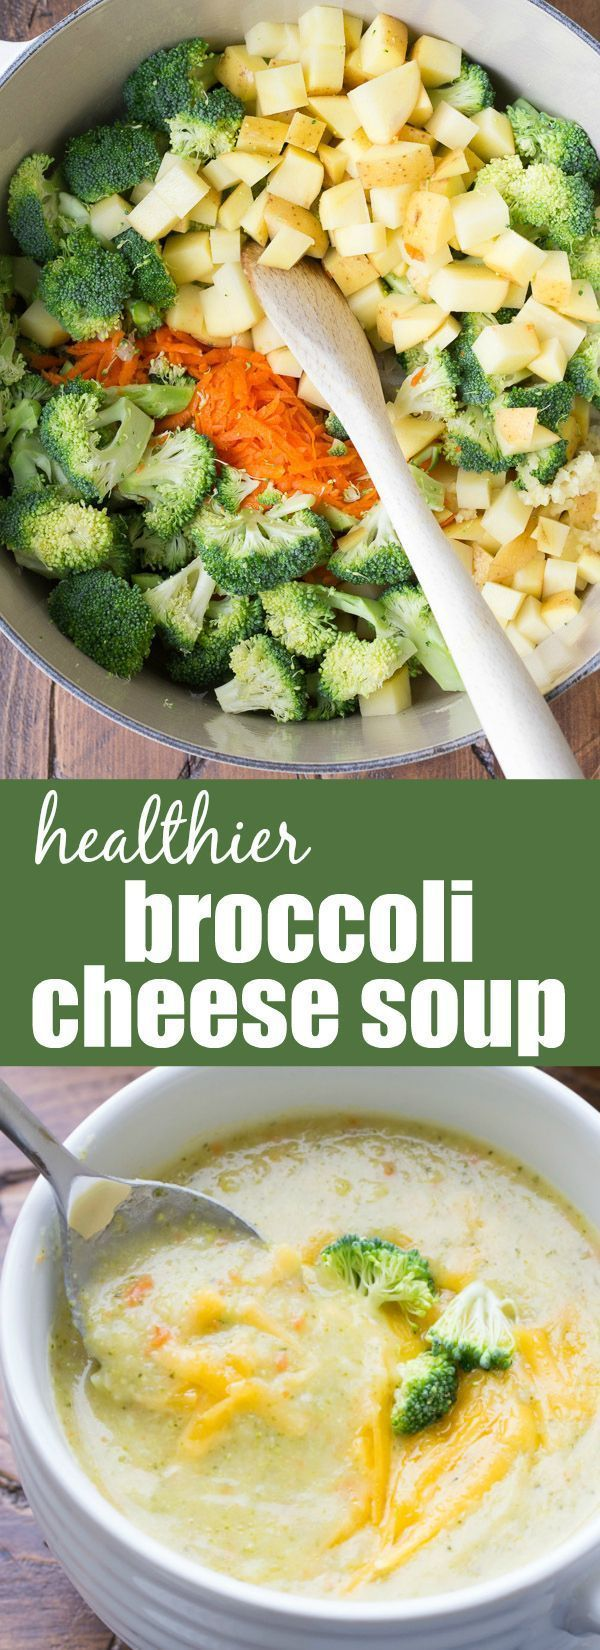 Creamy, hearty Broccoli Cheese Soup (made without cream!). This healthier vegetarian soup takes just 30 minutes to make! | www.kristineskitchenblog.com